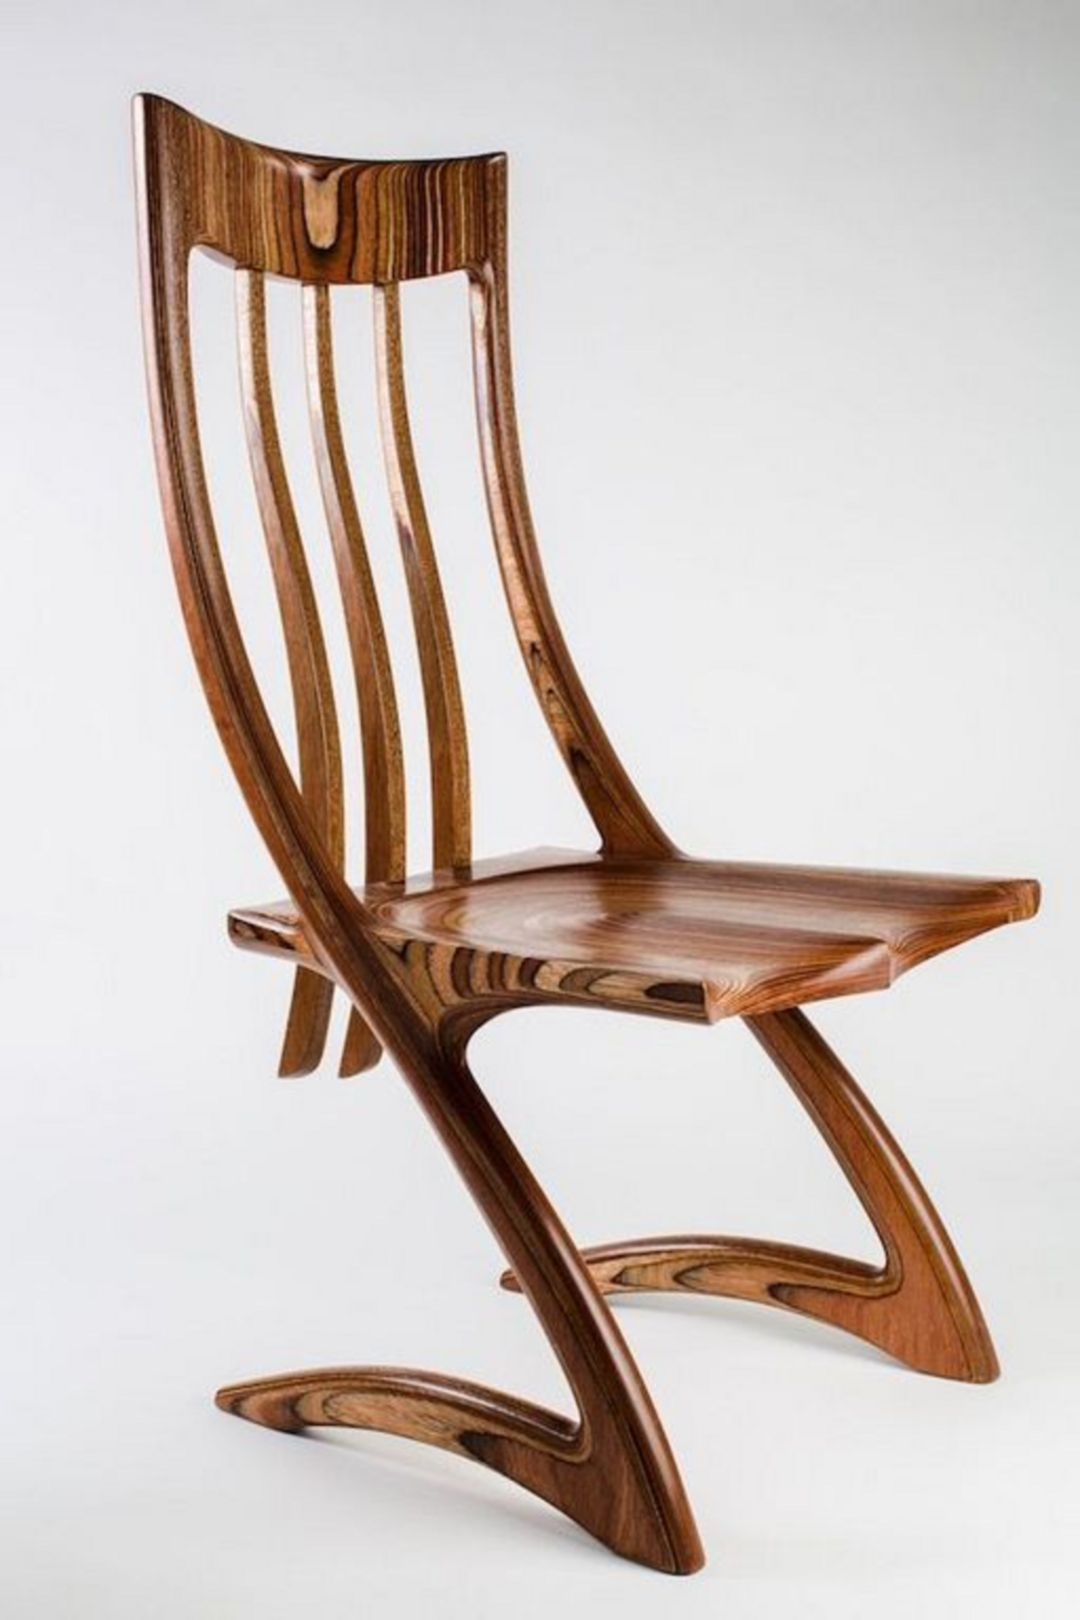 4 Unique Wooden Chair Designs For Your Elegant Minimalist Houses